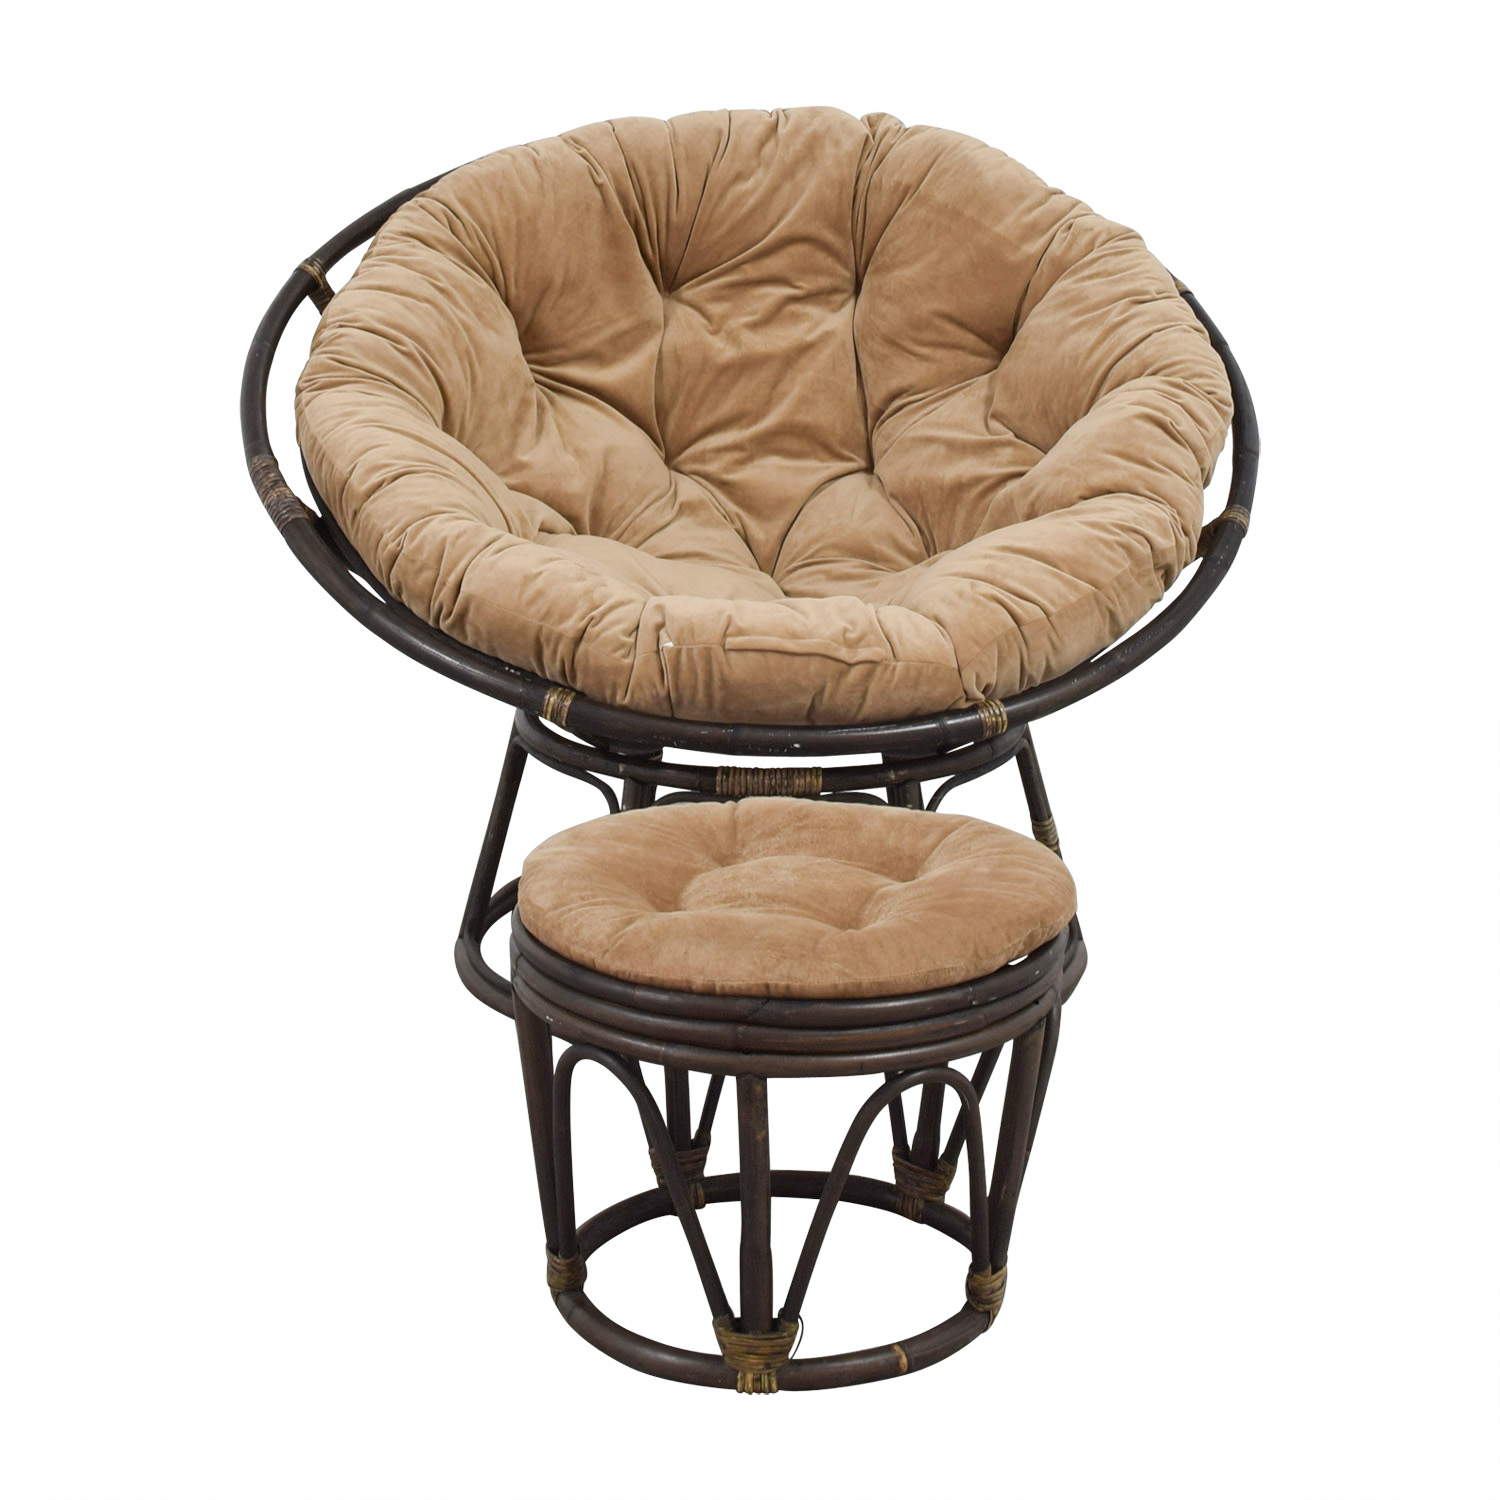 surprising Ottoman Imports Part - 13: buy Pier 1 Imports Papasan Brown Lounge Chair and Ottoman Pier 1 Imports ...